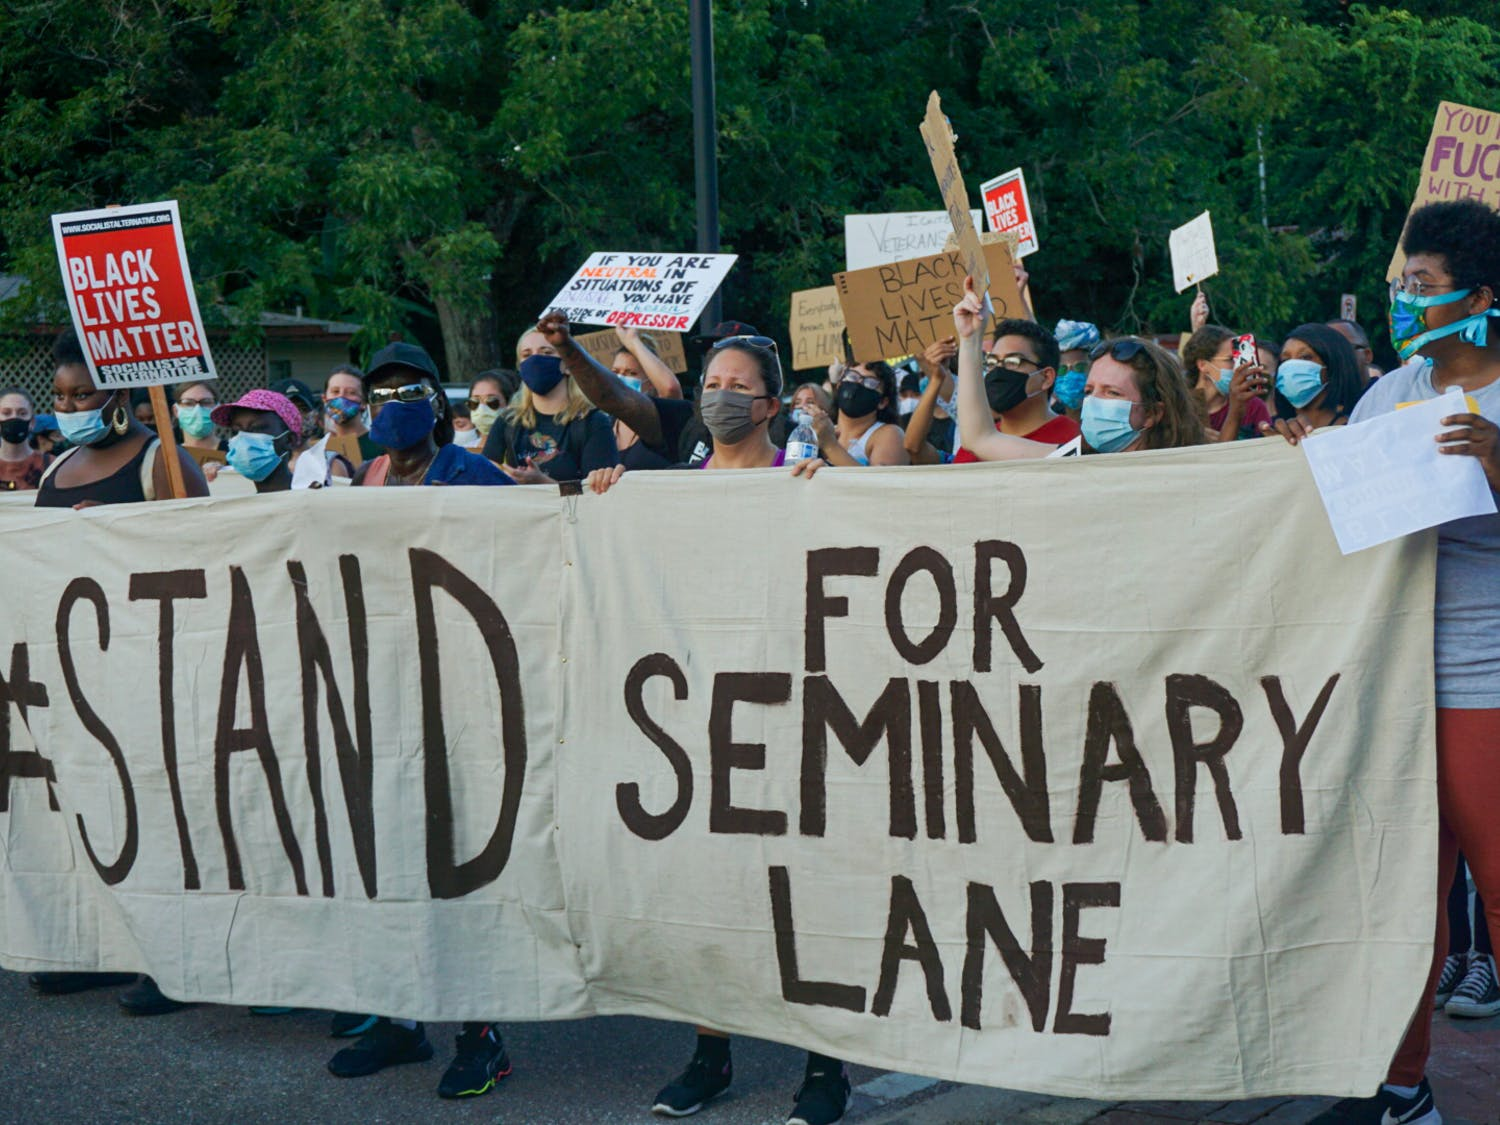 """Protesters hold a banner that reads, """"#StandForSeminaryLane,"""" demanding that developers refrain from building luxury student apartments on land located in a historically Black community."""